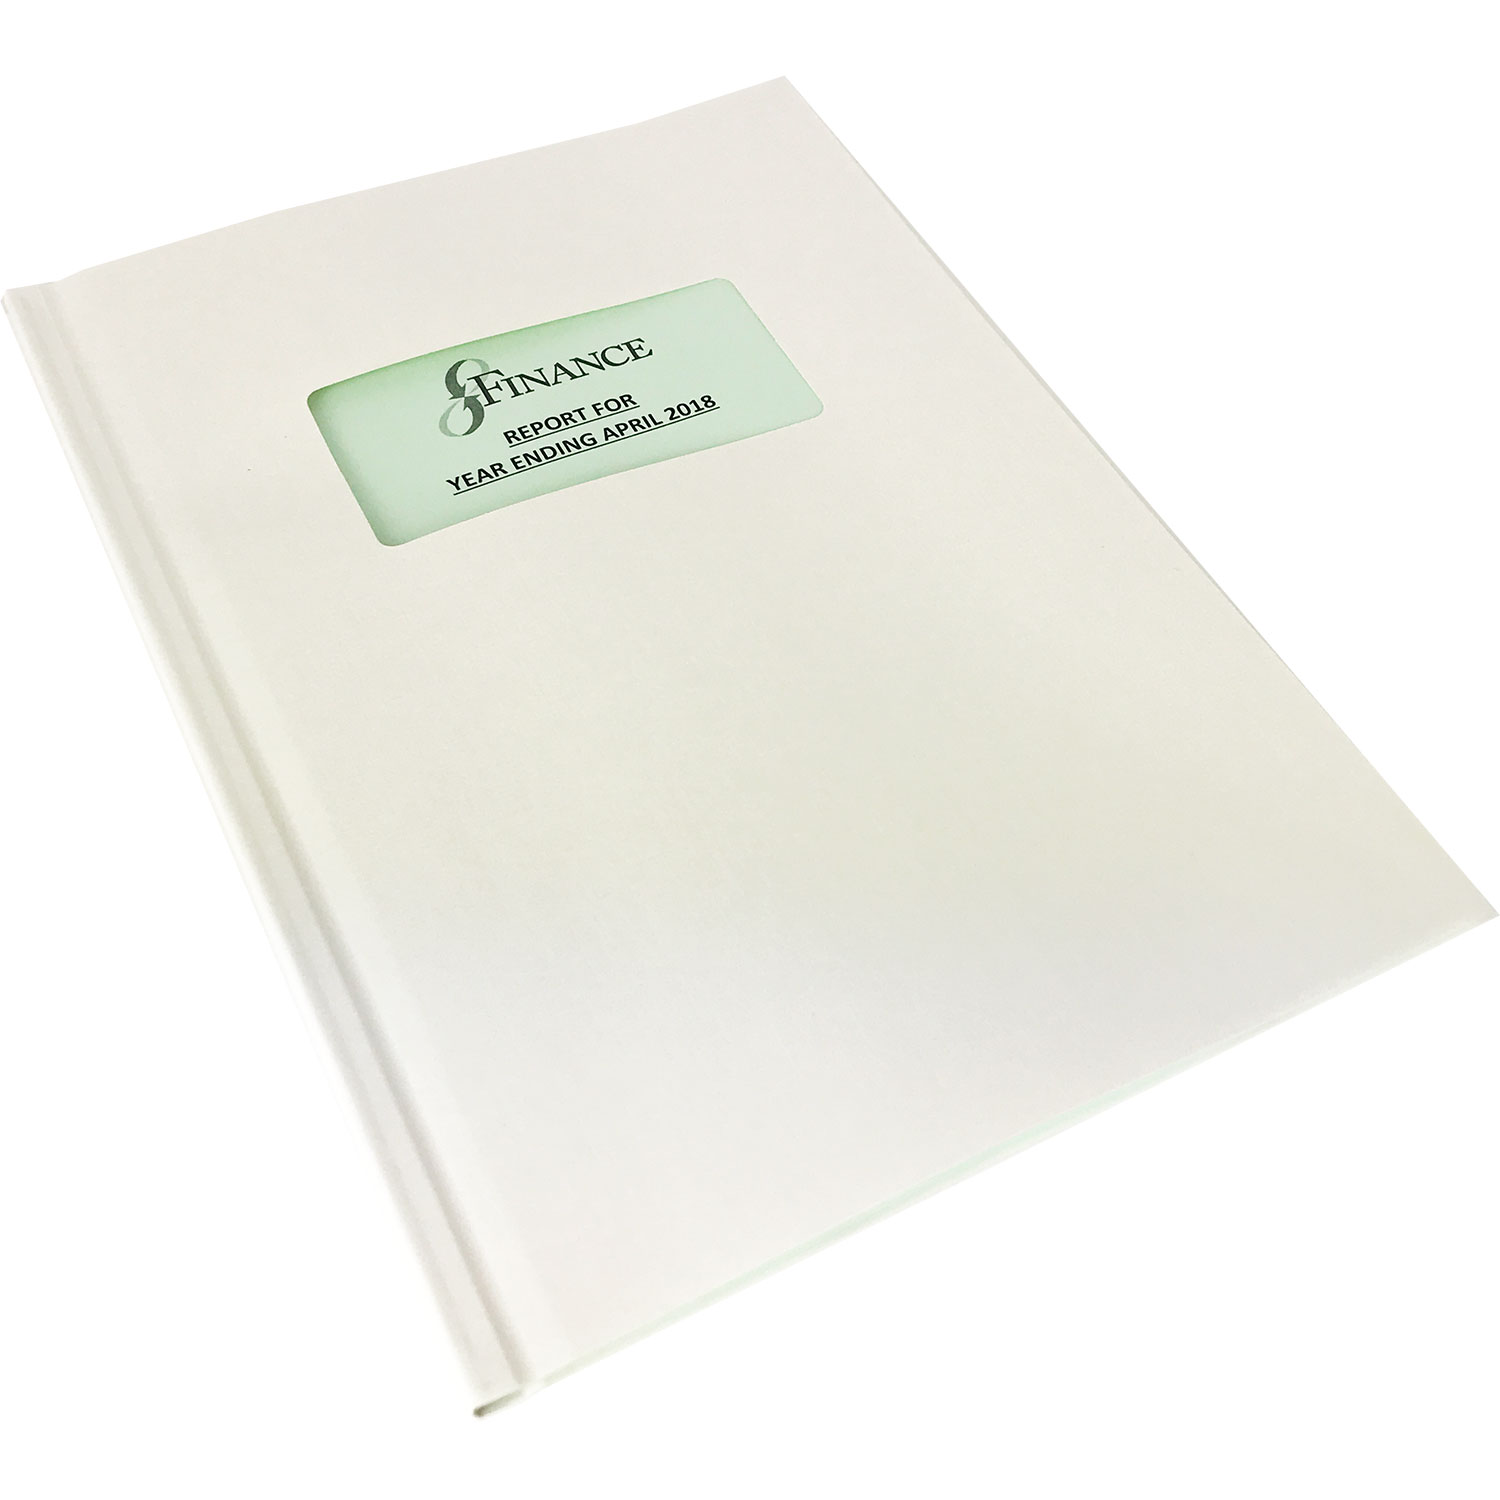 Channelbind A4 Soft-Window Cut-Out Binding Covers - White